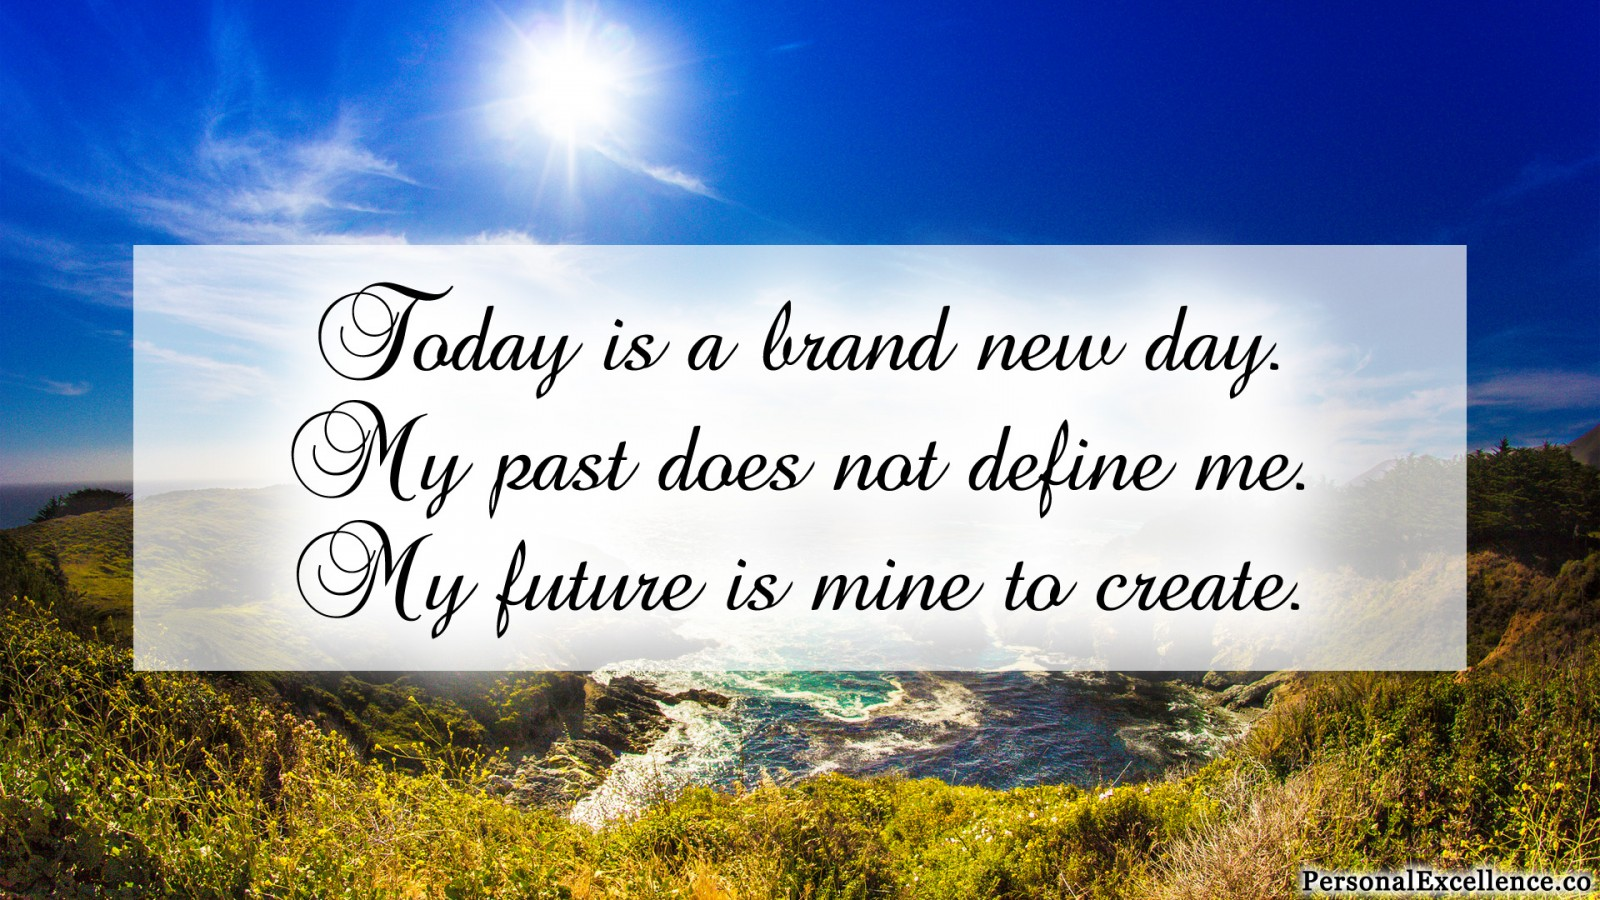 15 Gorgeous Wallpapers With Positive Affirmations  Personal Excellence